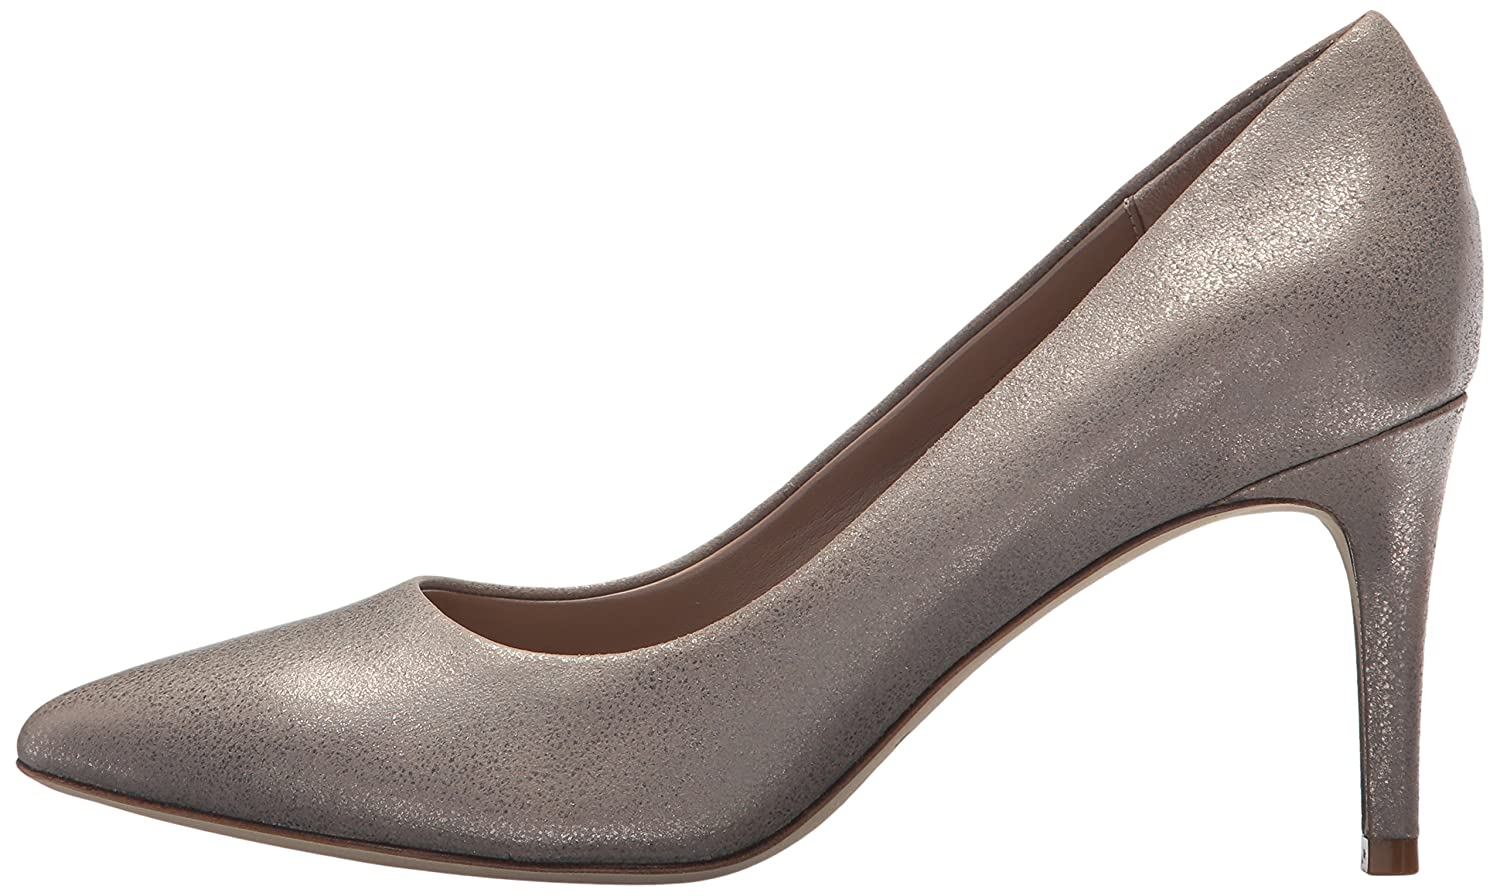 Donald J Pliner Women's Ibby Pump B072NGJTNM 10 B(M) US|Light Pewter